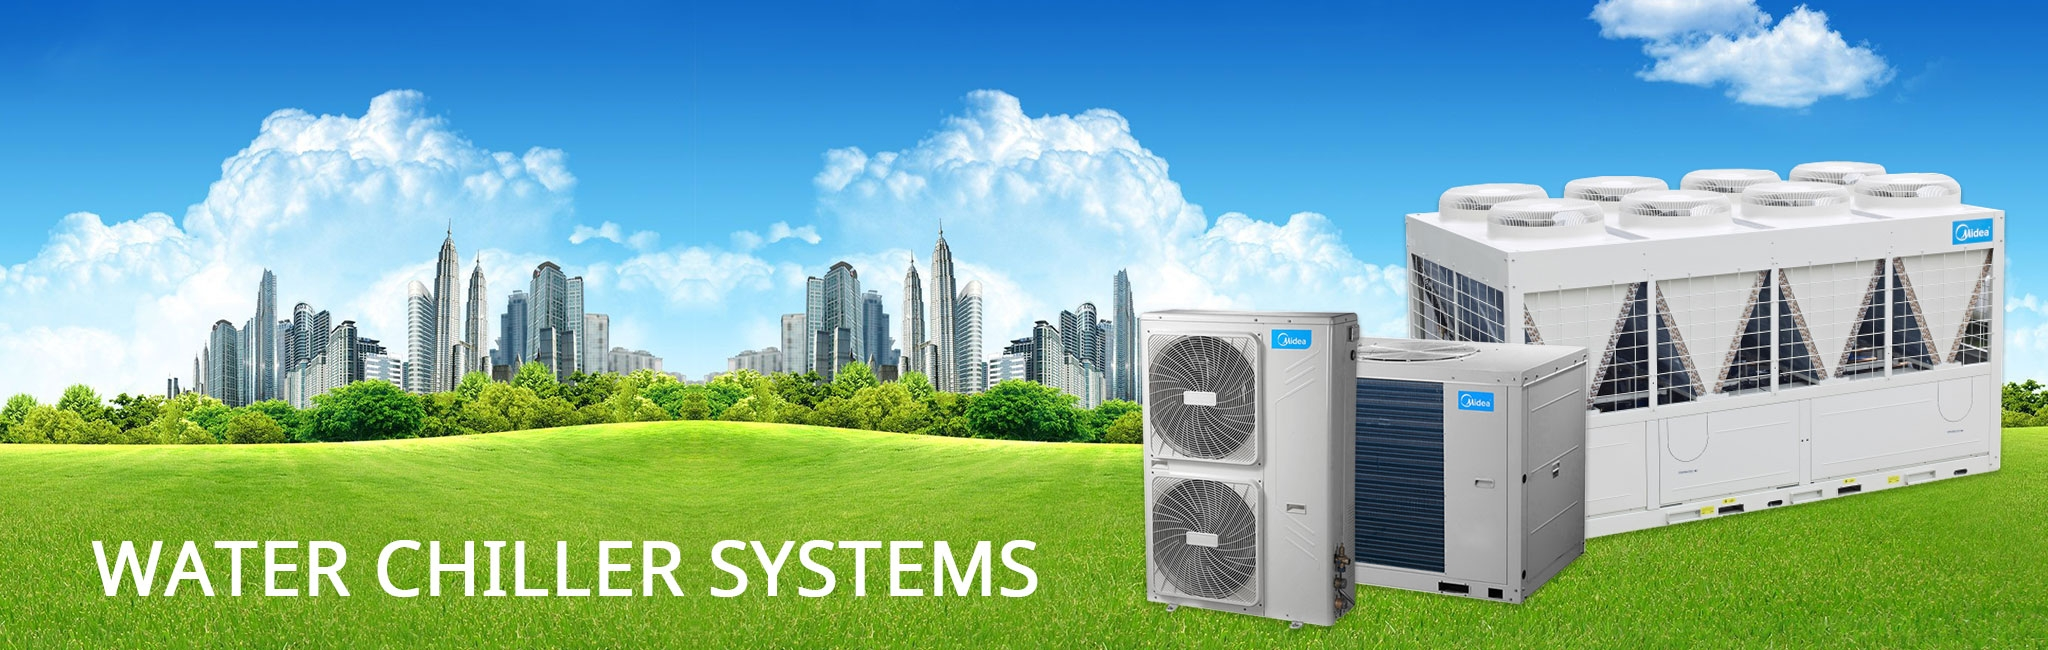 Choose economy and efficiency with Midea chiller systems.